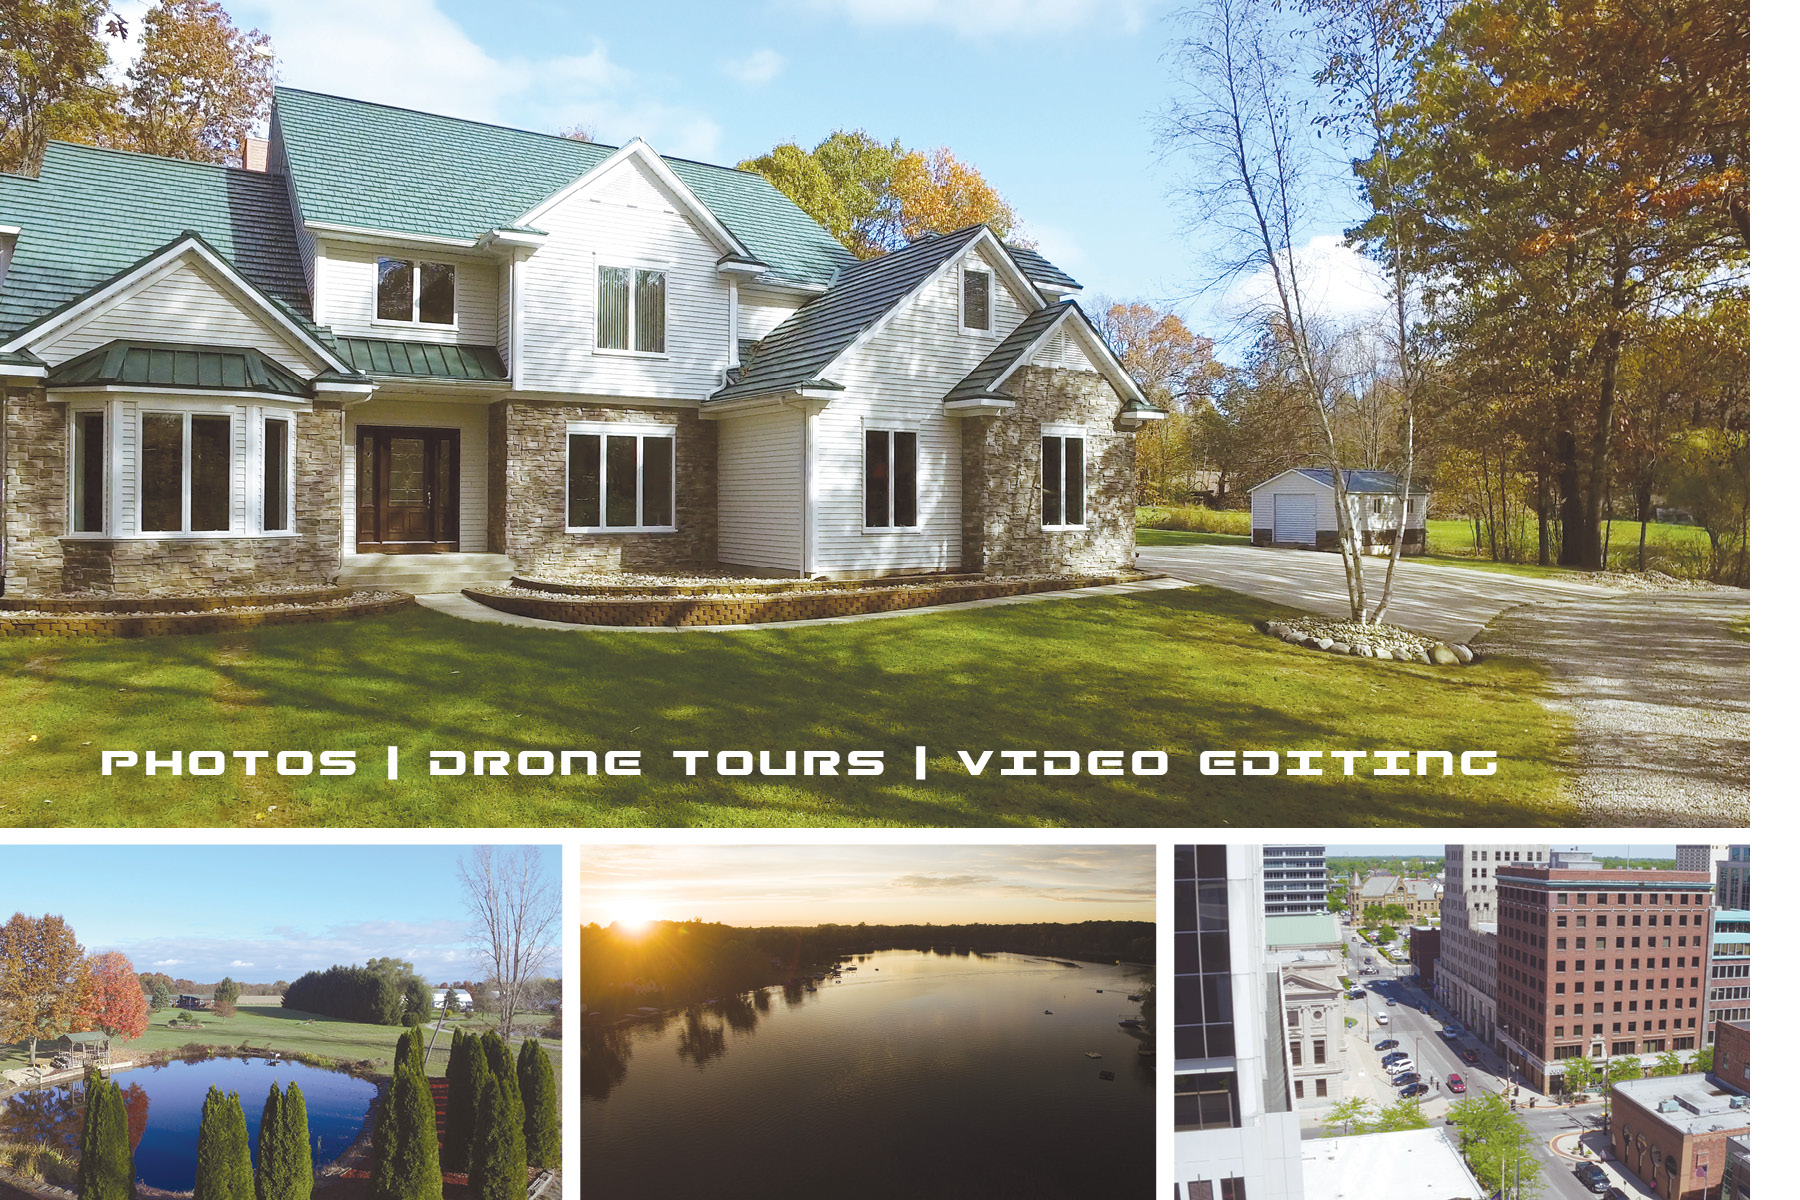 Drone postcard including photo of house and lake scenery